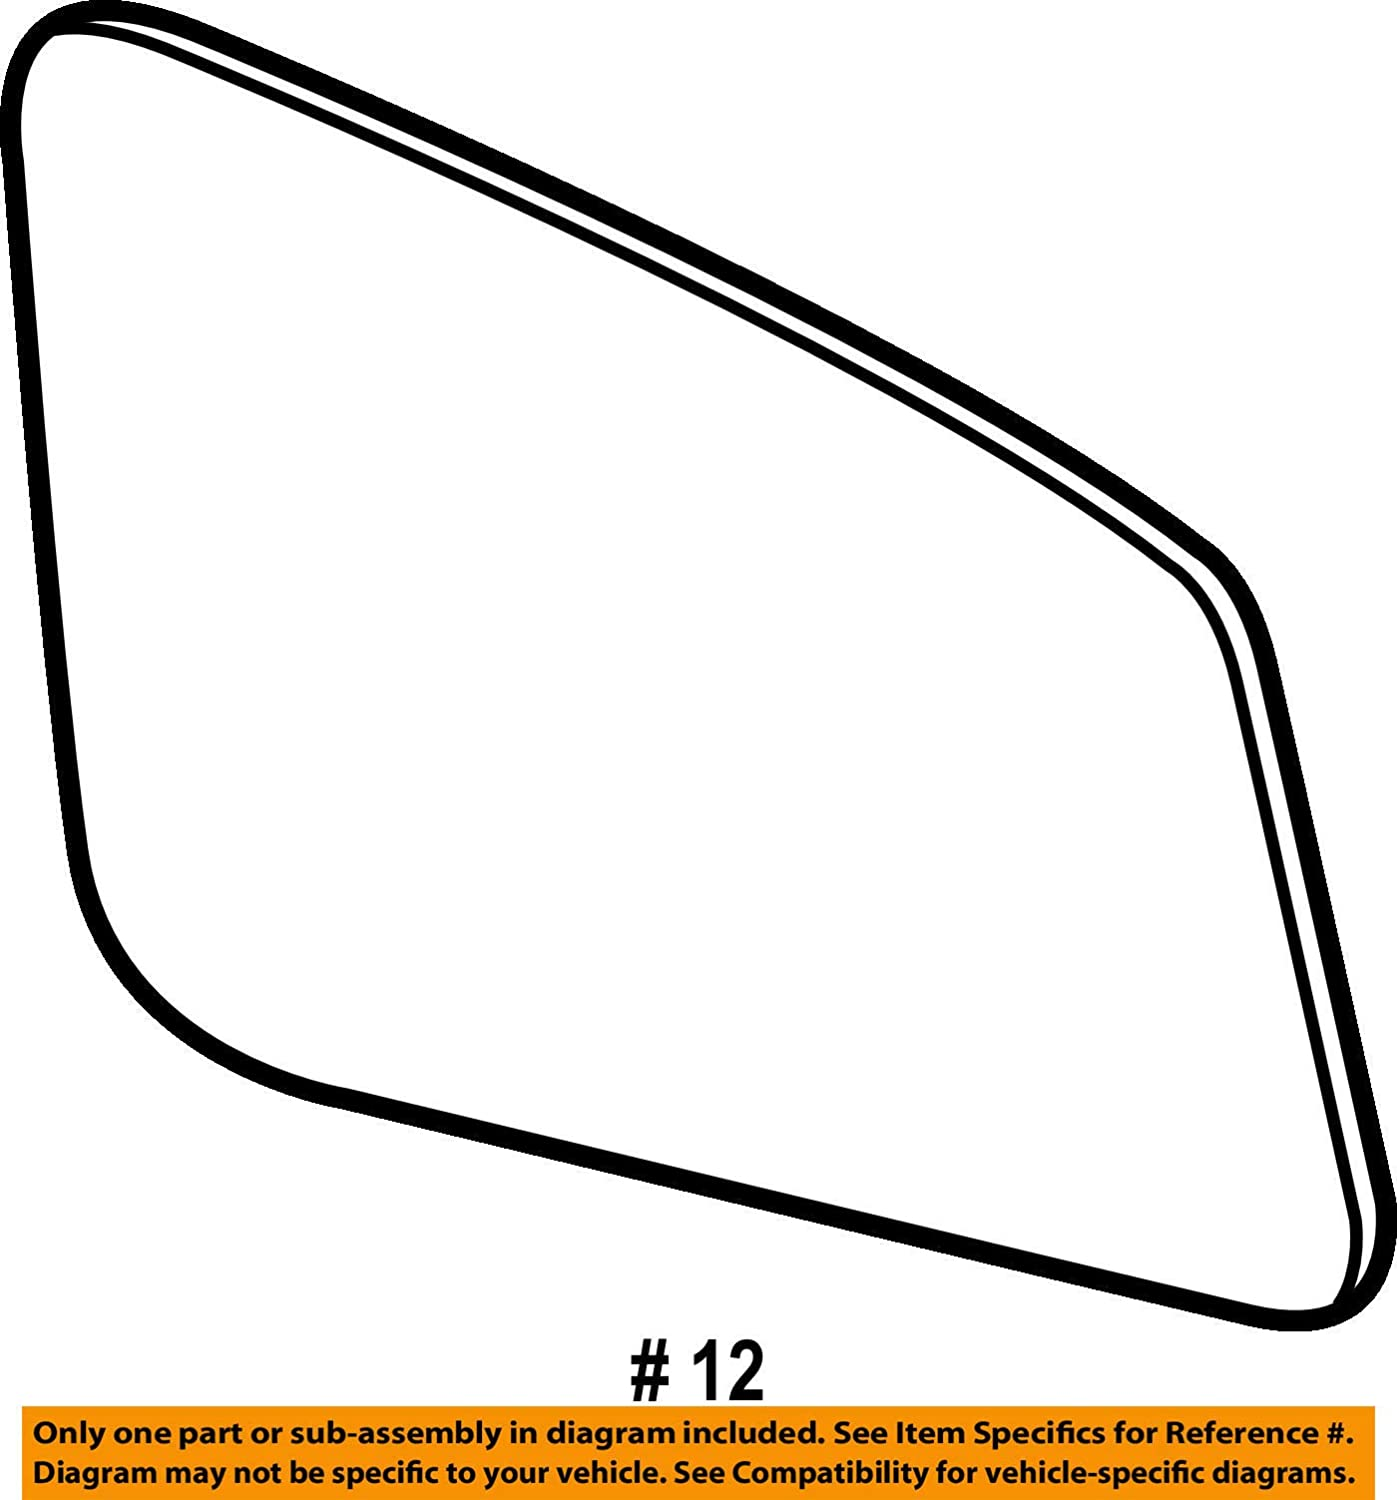 Amazon.com: BMW F30 F32 320i 328i 328d 335i 428i 430i LEFT MIRROR HEATED AND DIMMING 51167285005 OEM: Automotive